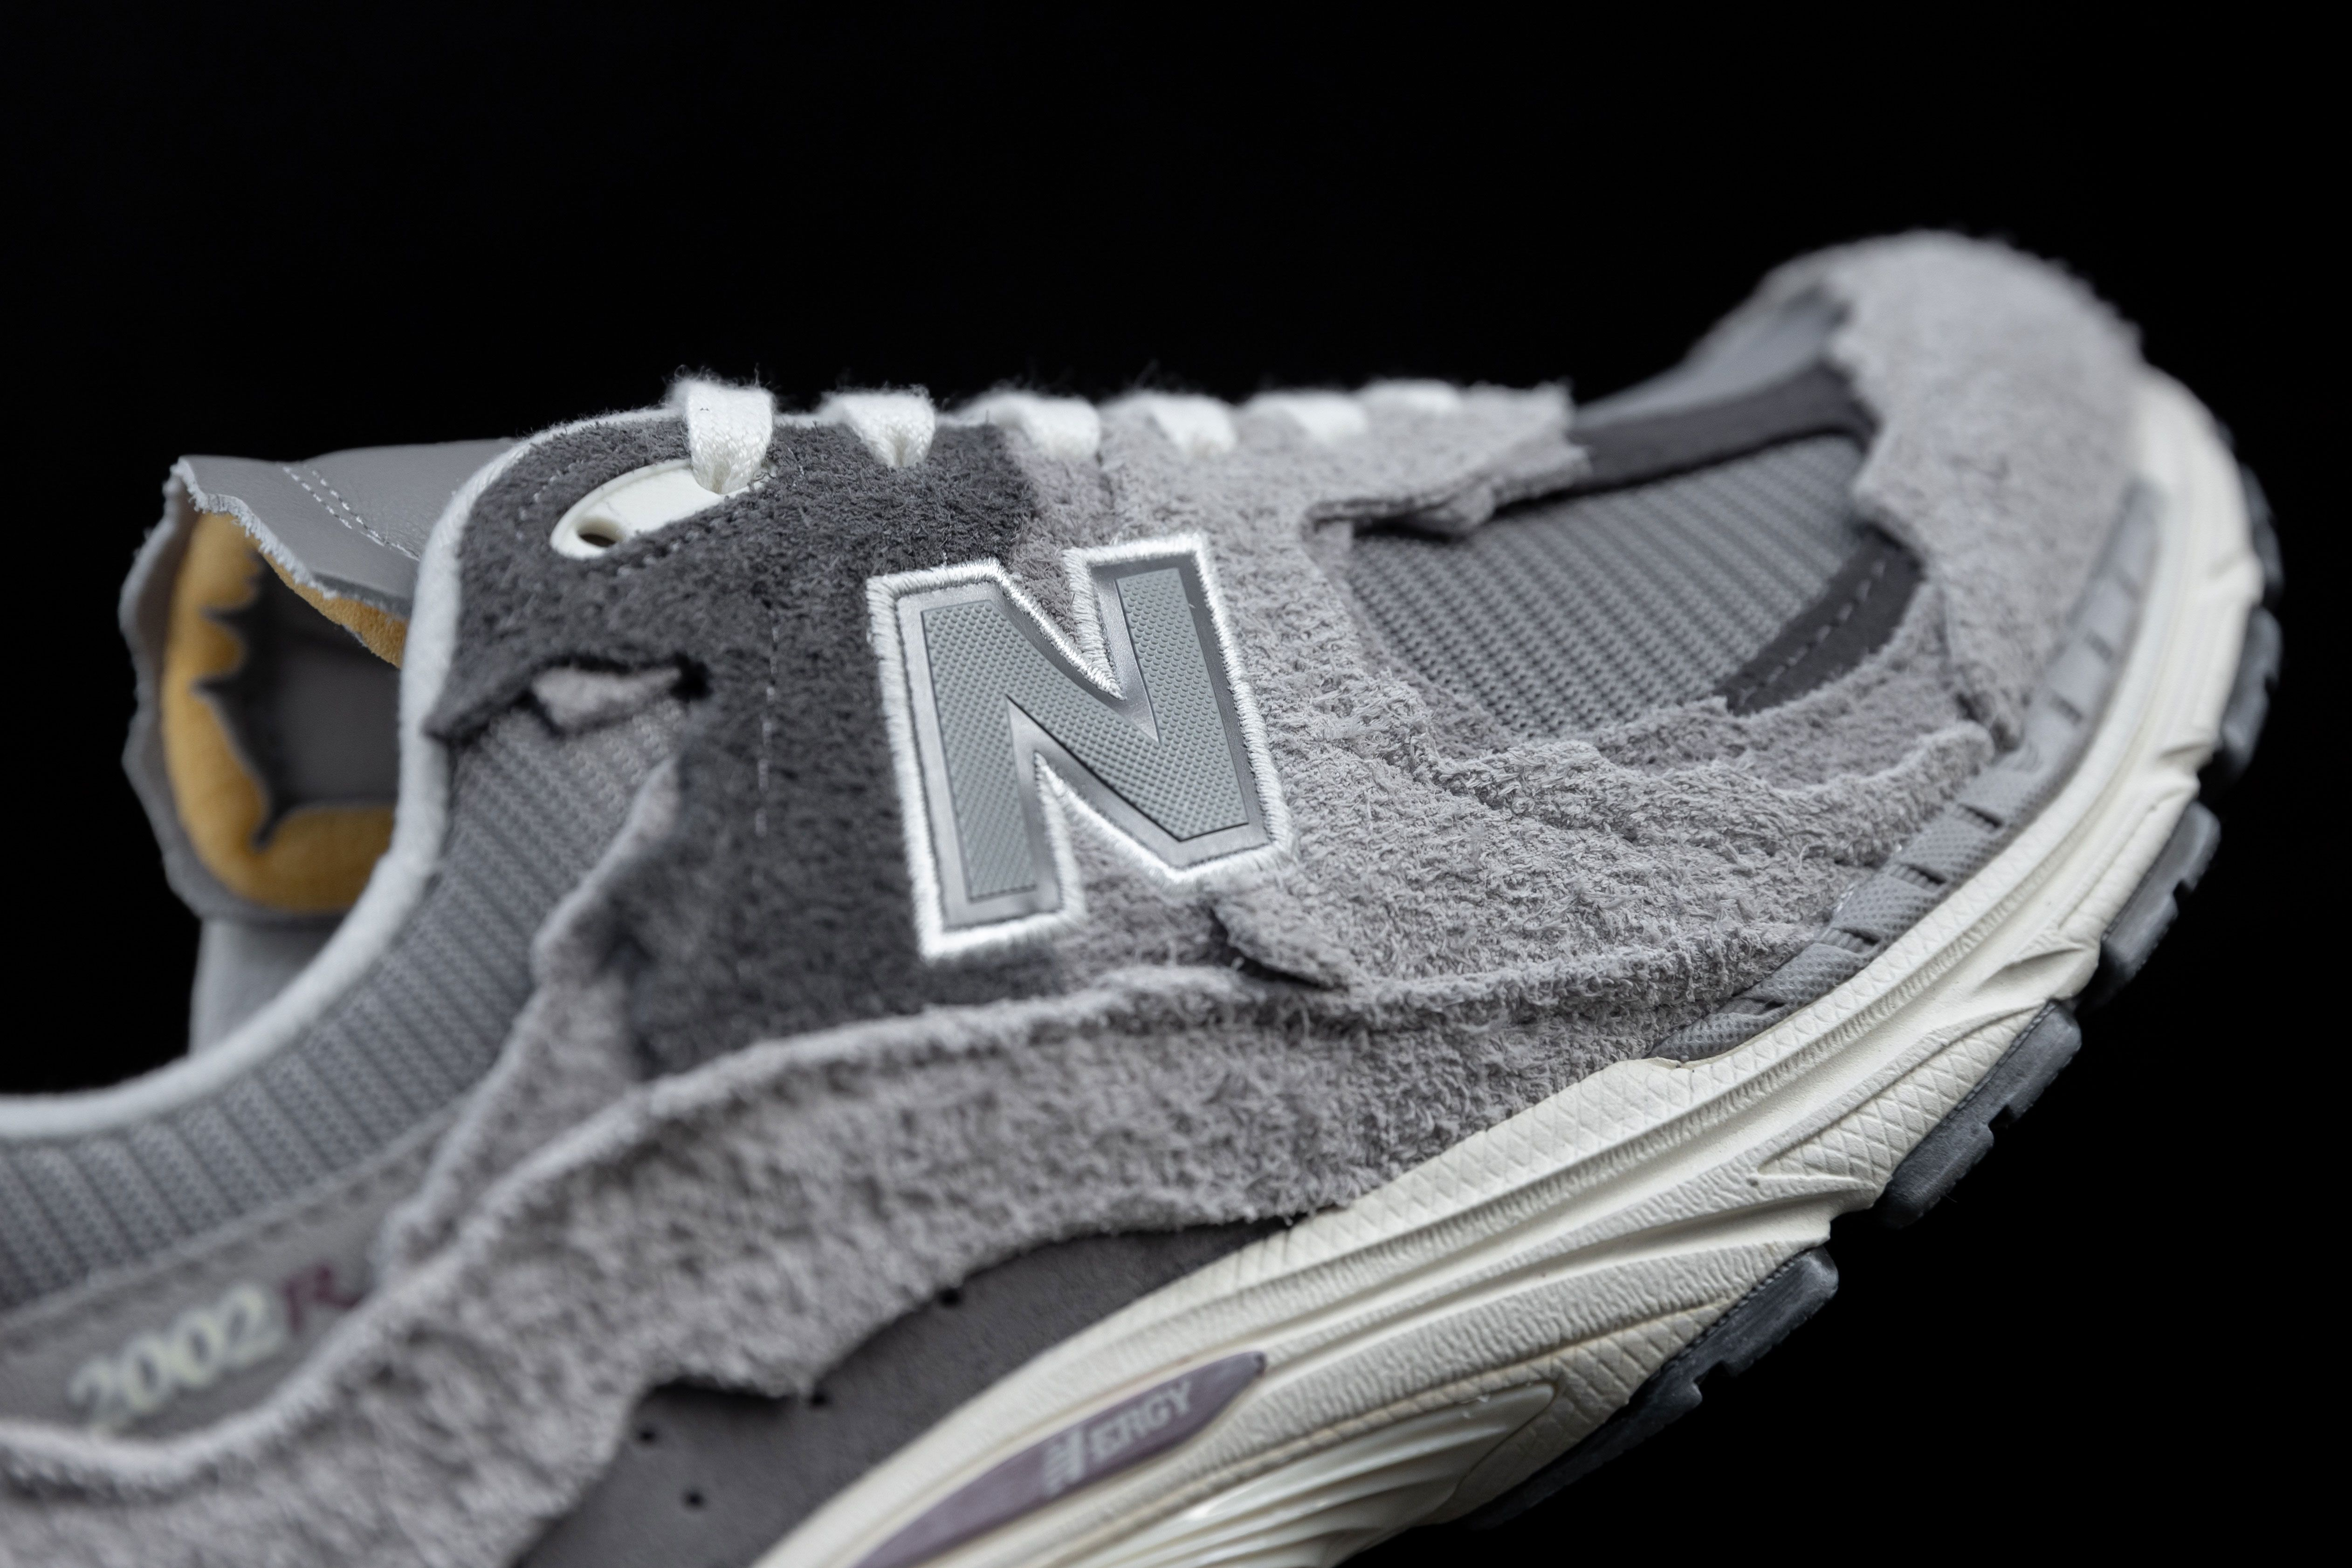 New Balance 2002 'Protection' Pack